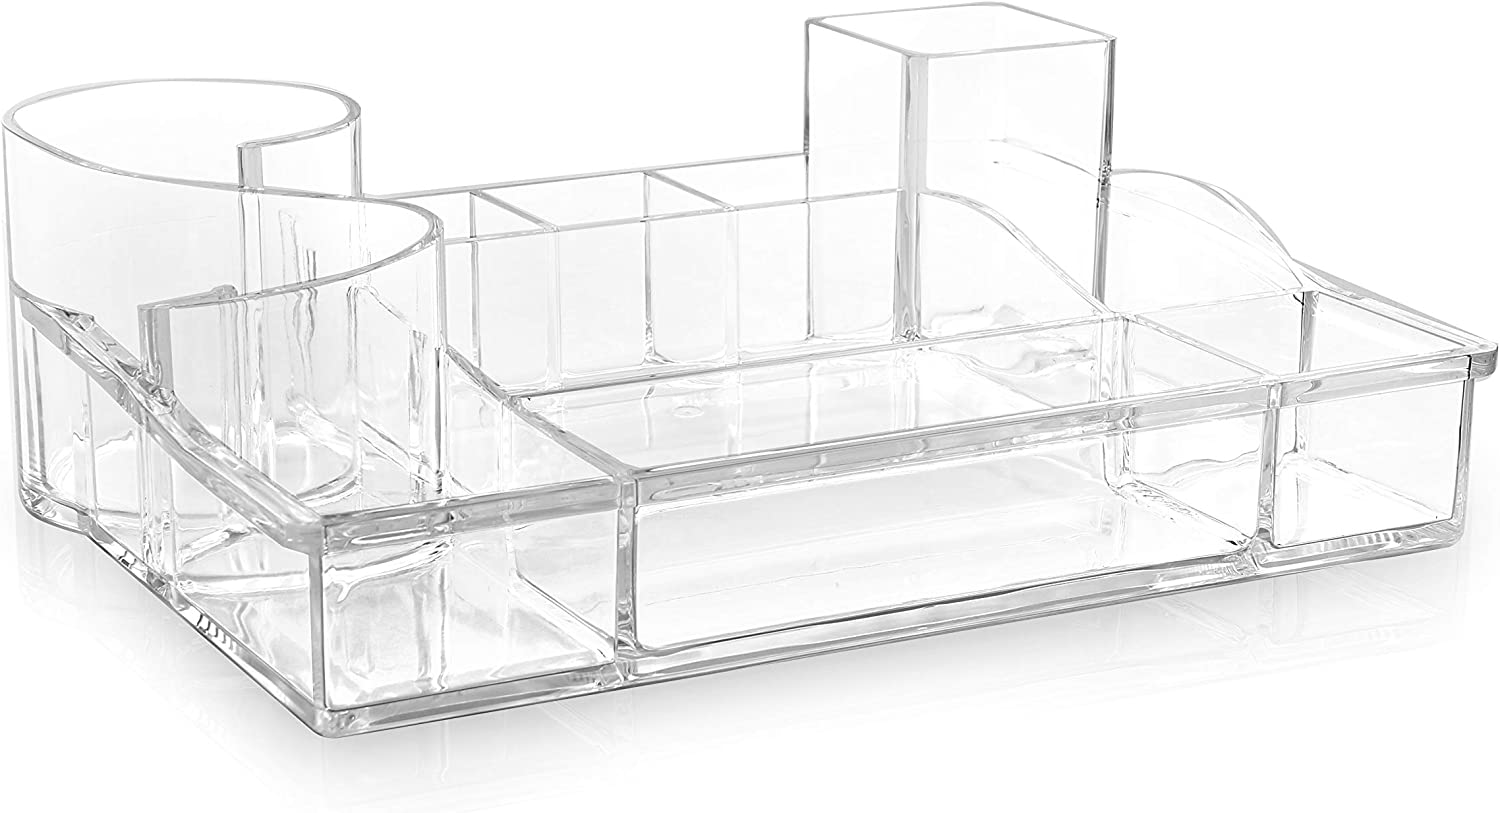 BINO 'The Squire' 11 Compartment Jewelry and Makeup Organizer, Clear and Transparent Cosmetic Beauty Vanity Holder Storage